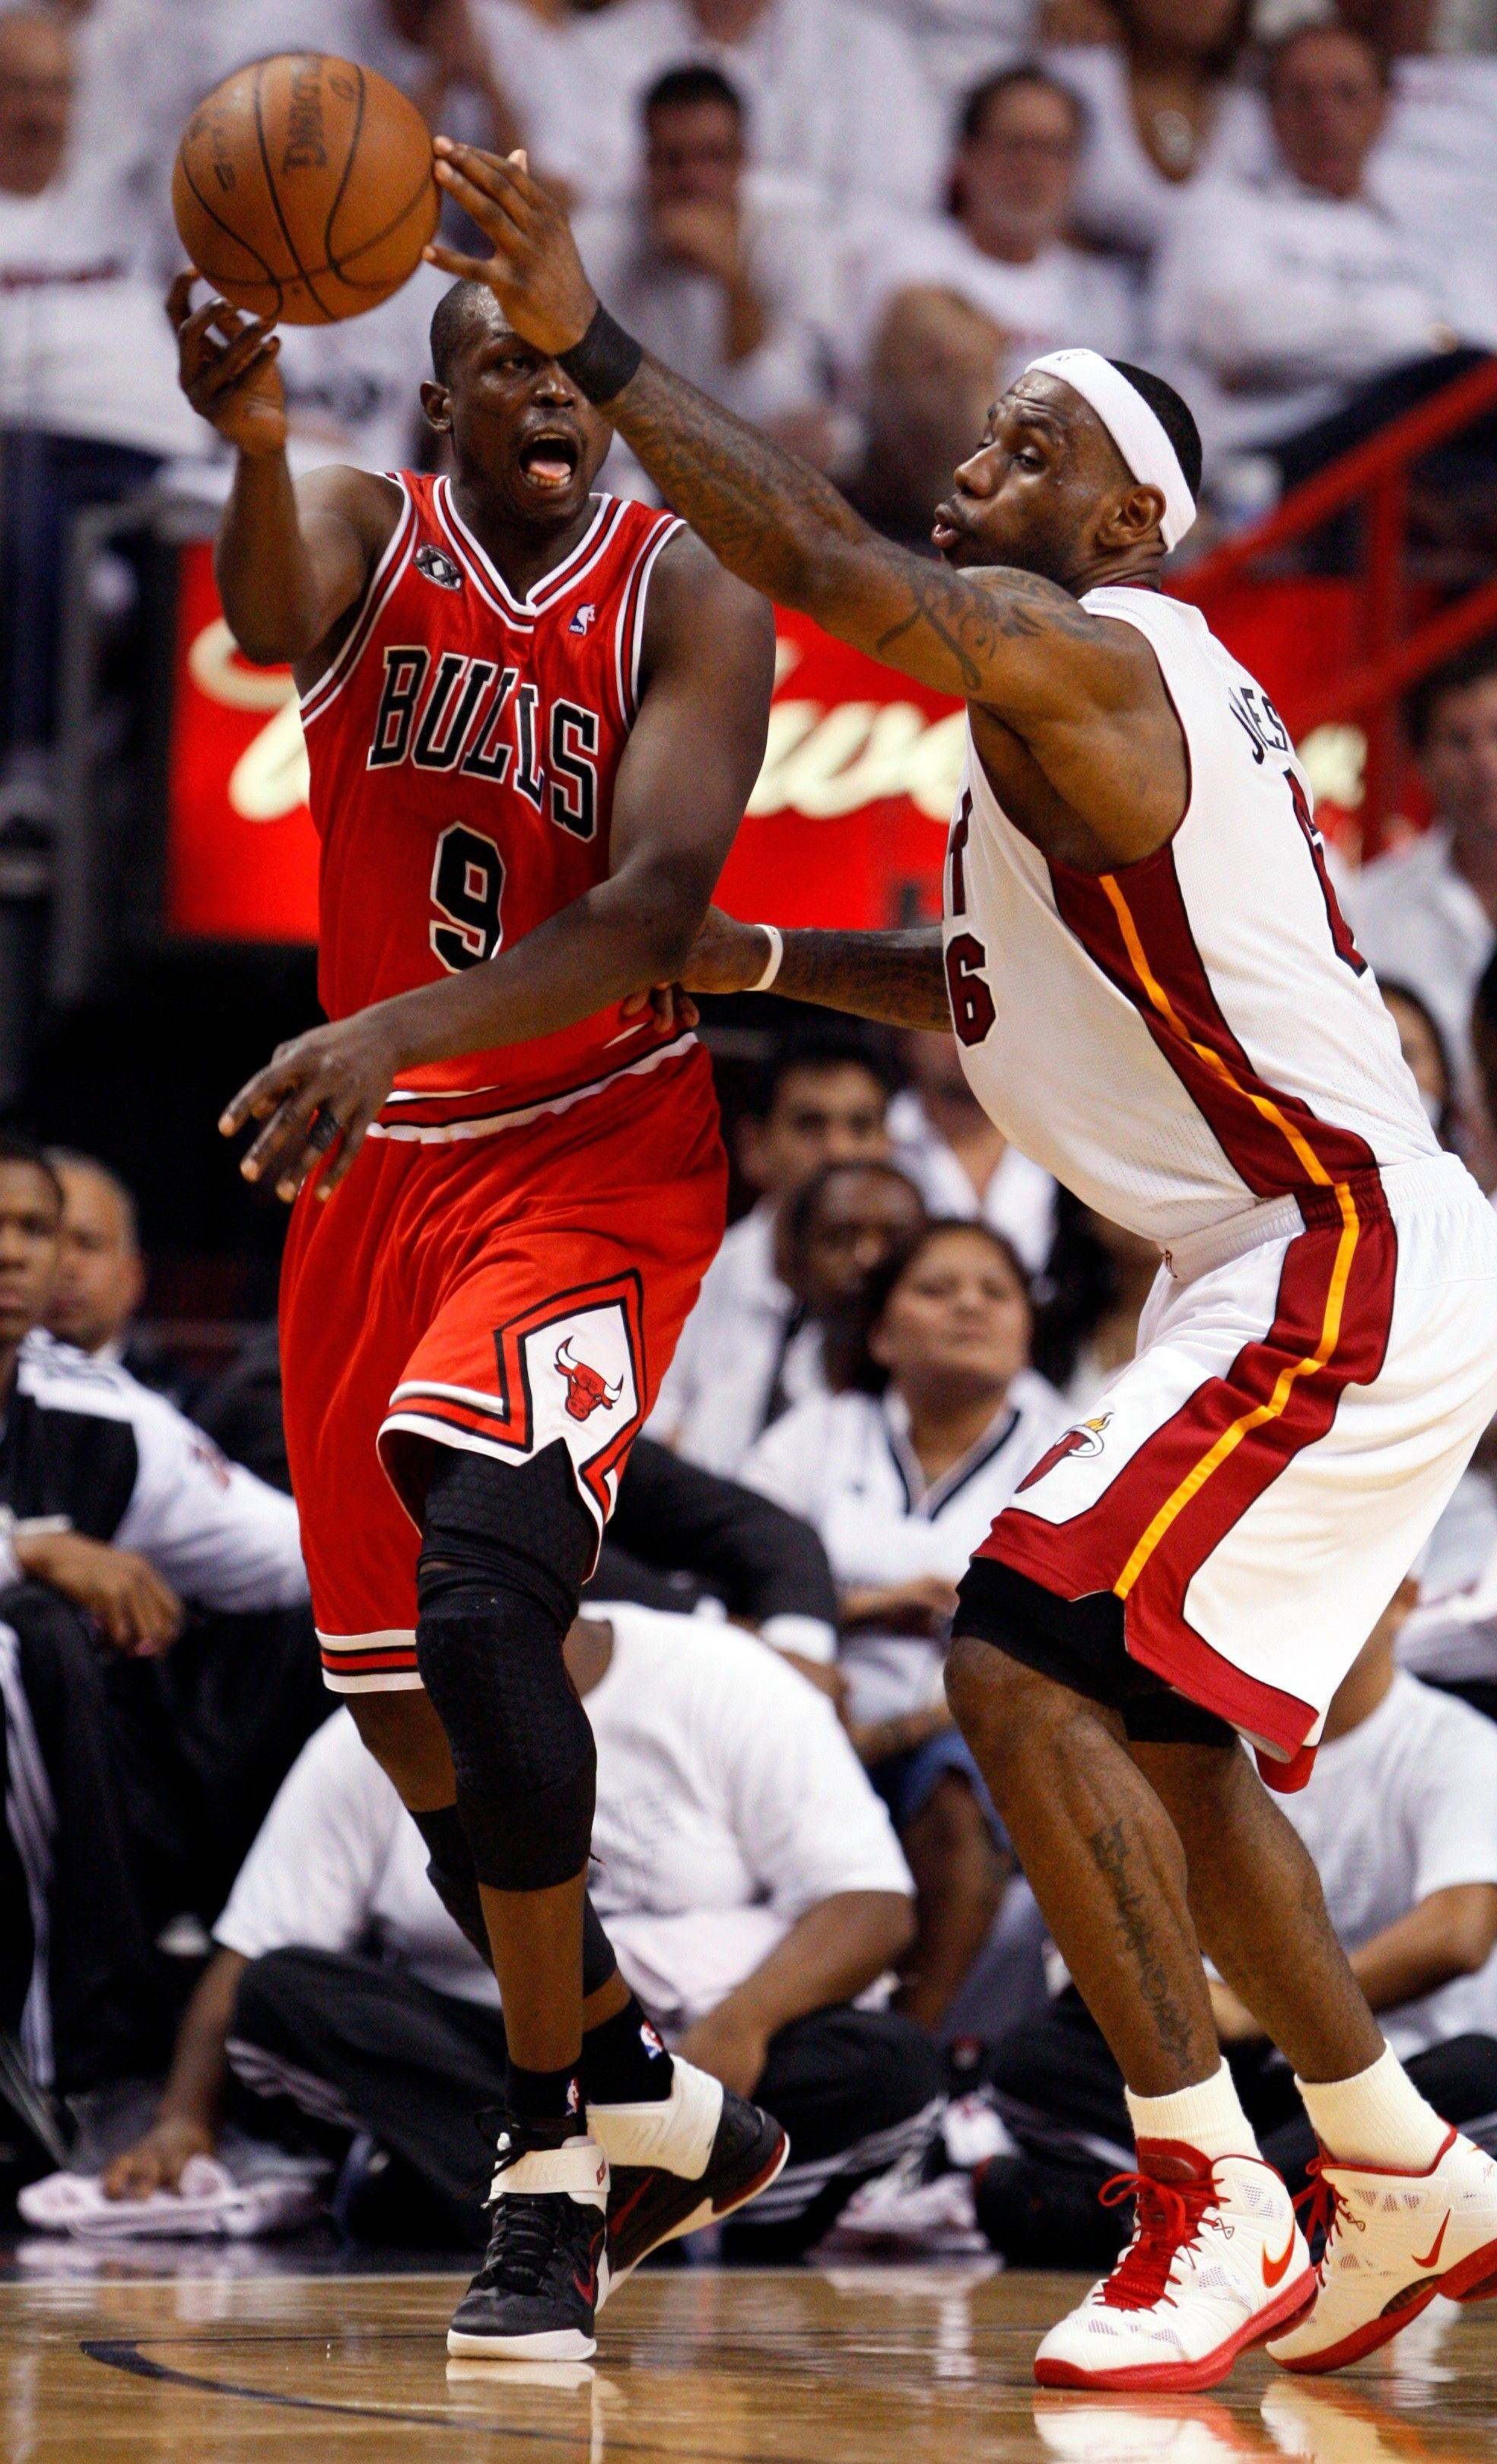 Miami Heat's LeBron James (6) blocks a pass by Chicago Bulls Luol Deng (9) during the second half of Game 4 of the NBA Eastern Conference finals basketball series in Miami, Tuesday, May 24, 2011.